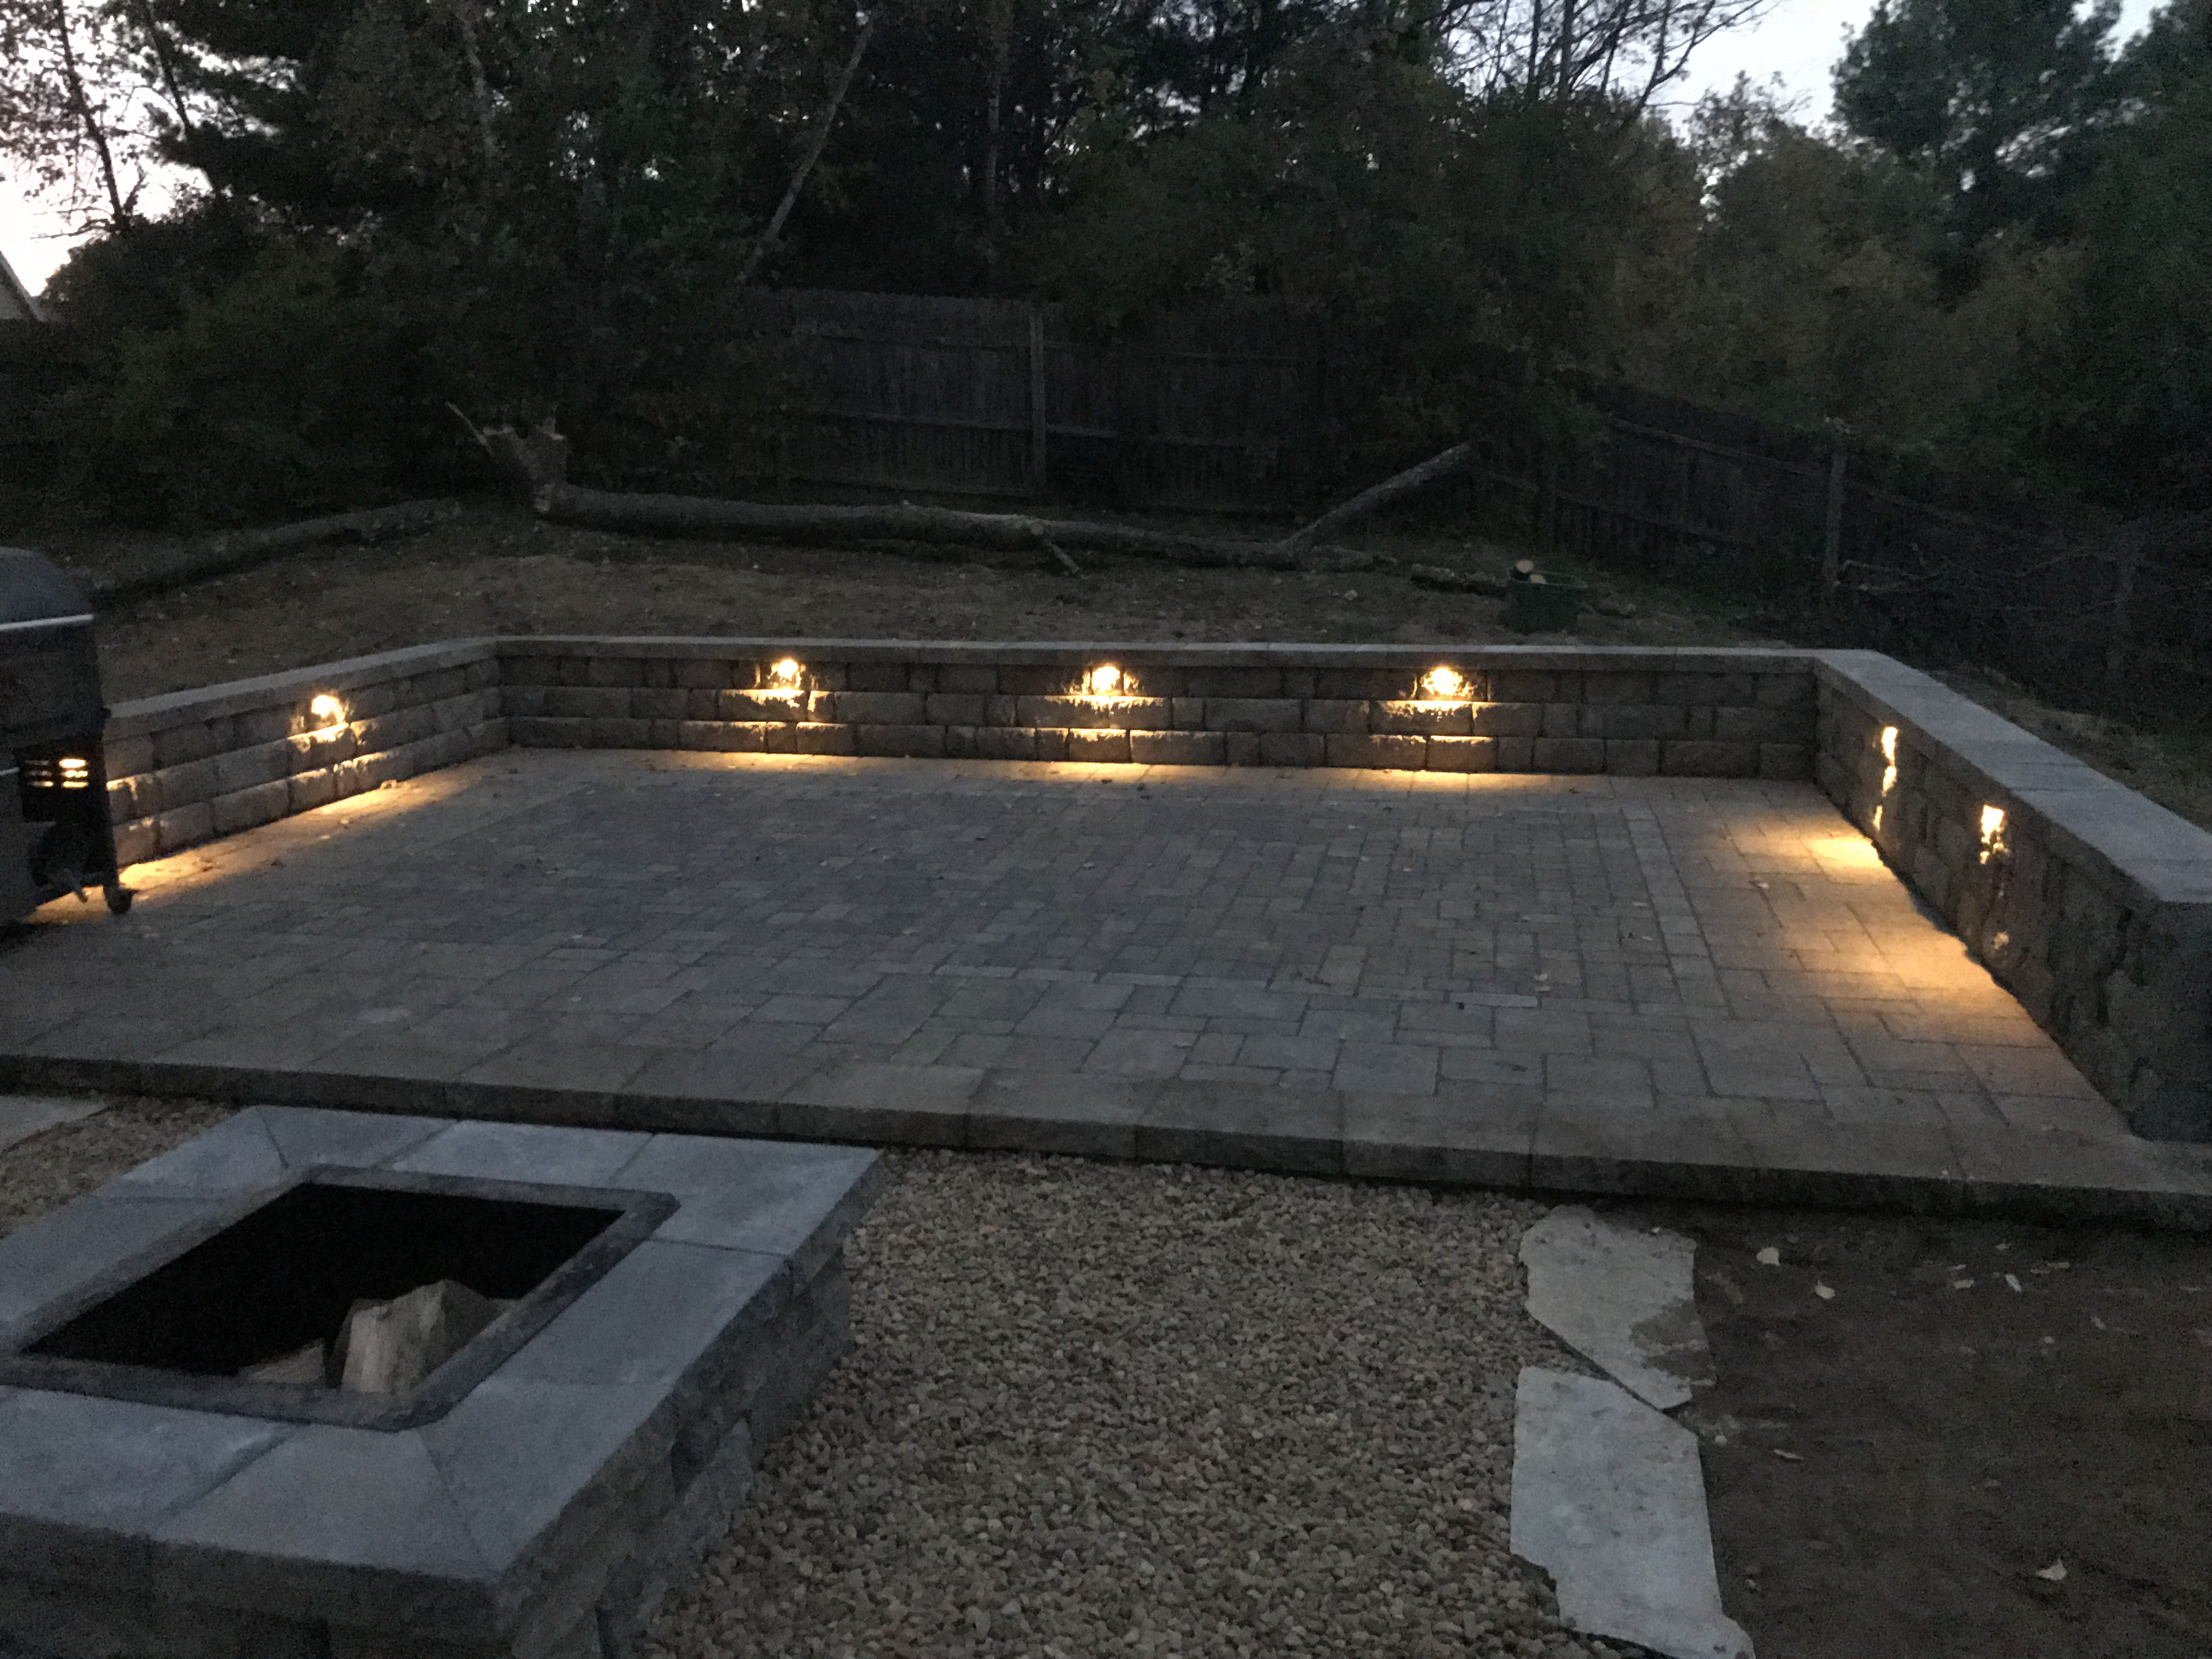 Flintlocke Drive Fire Pit and Patio After